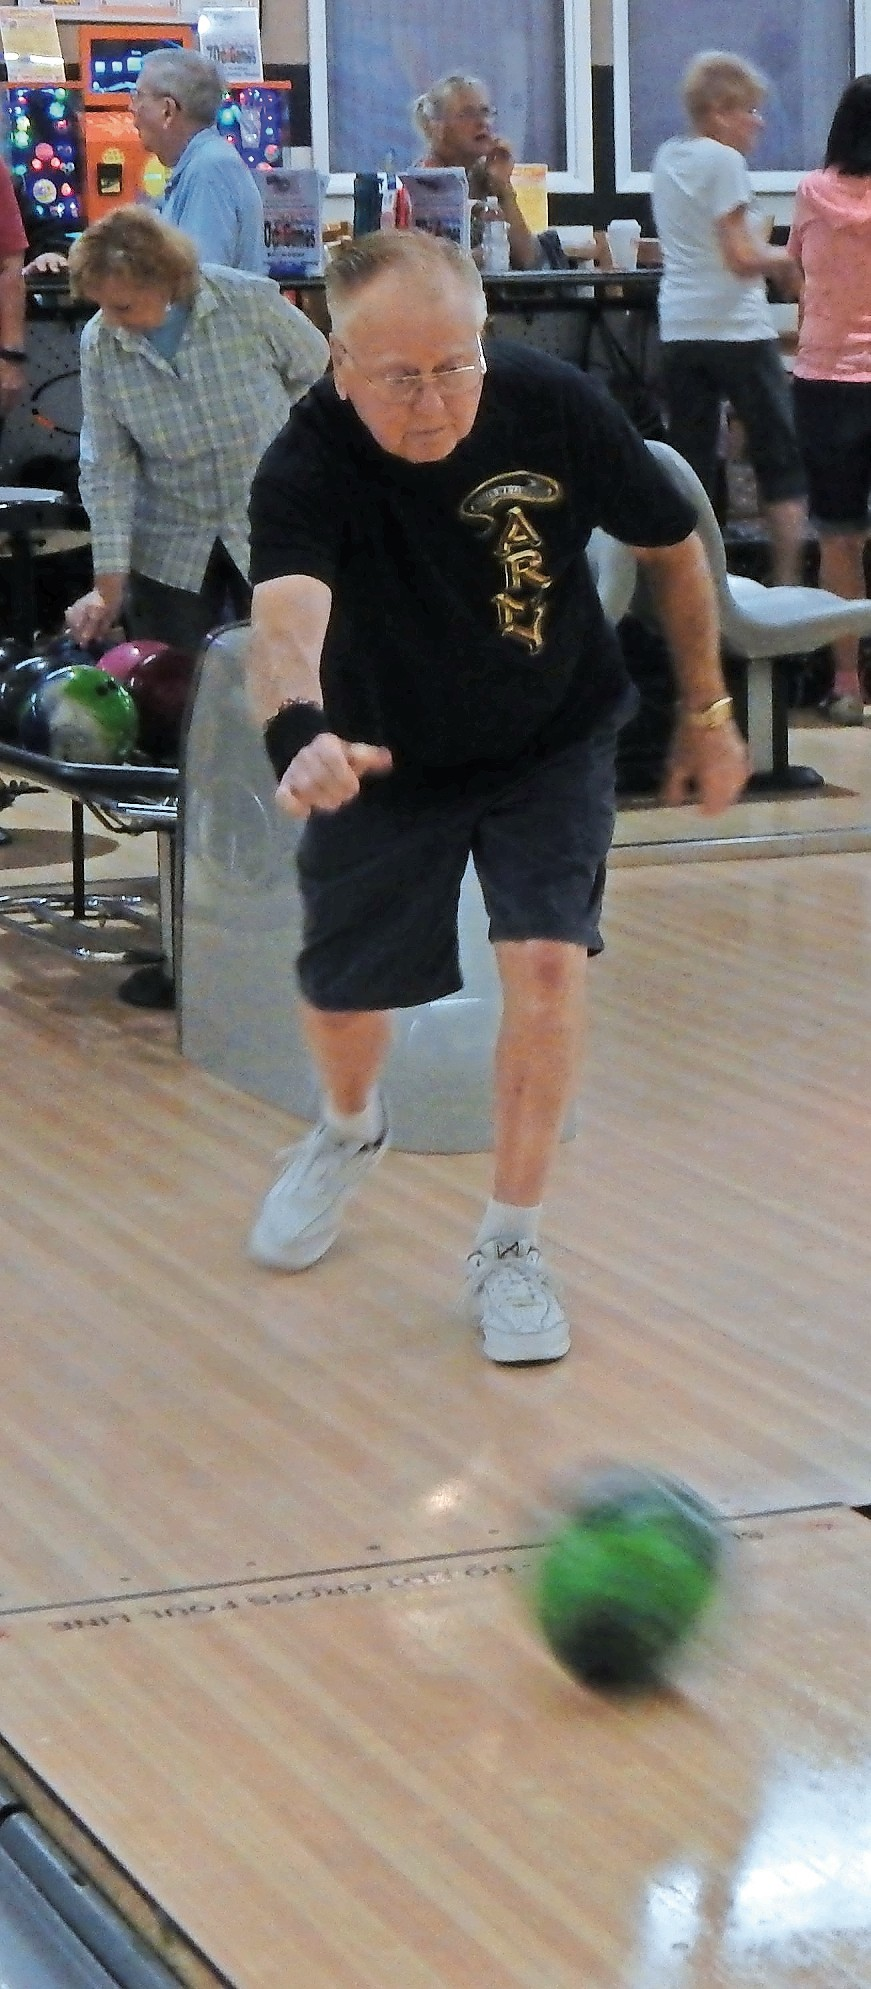 Residents learned about the health benefits of bowling before they played free games.